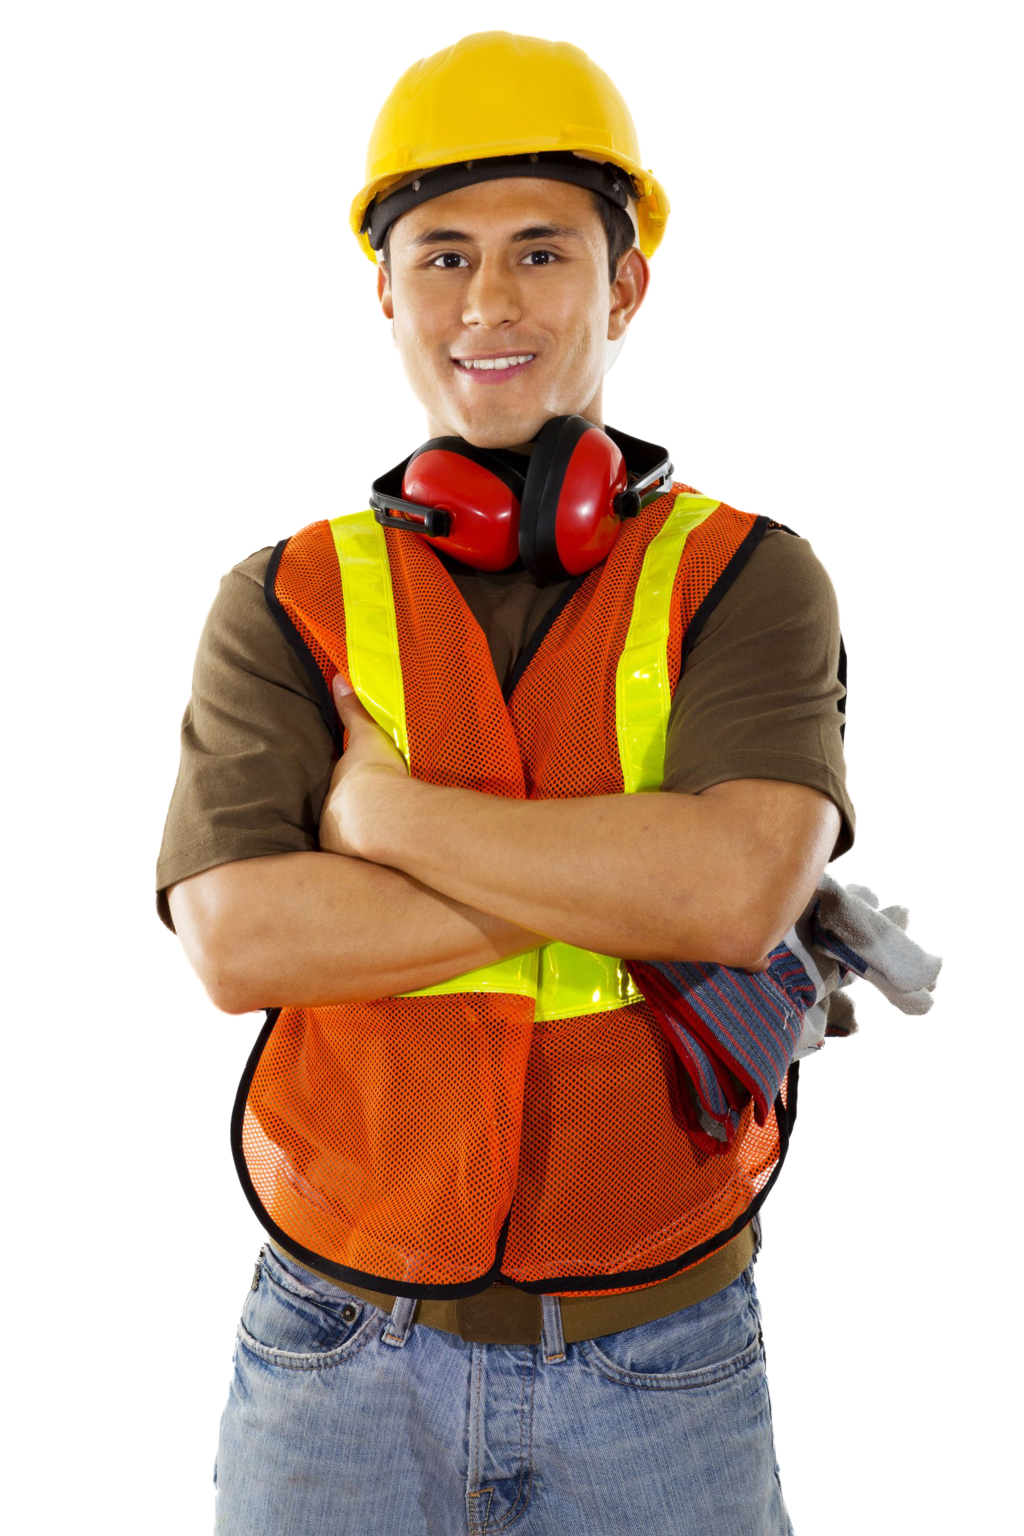 Man1.png Pluspng Pluspng.com   Png Worker - Construction Worker, Transparent background PNG HD thumbnail